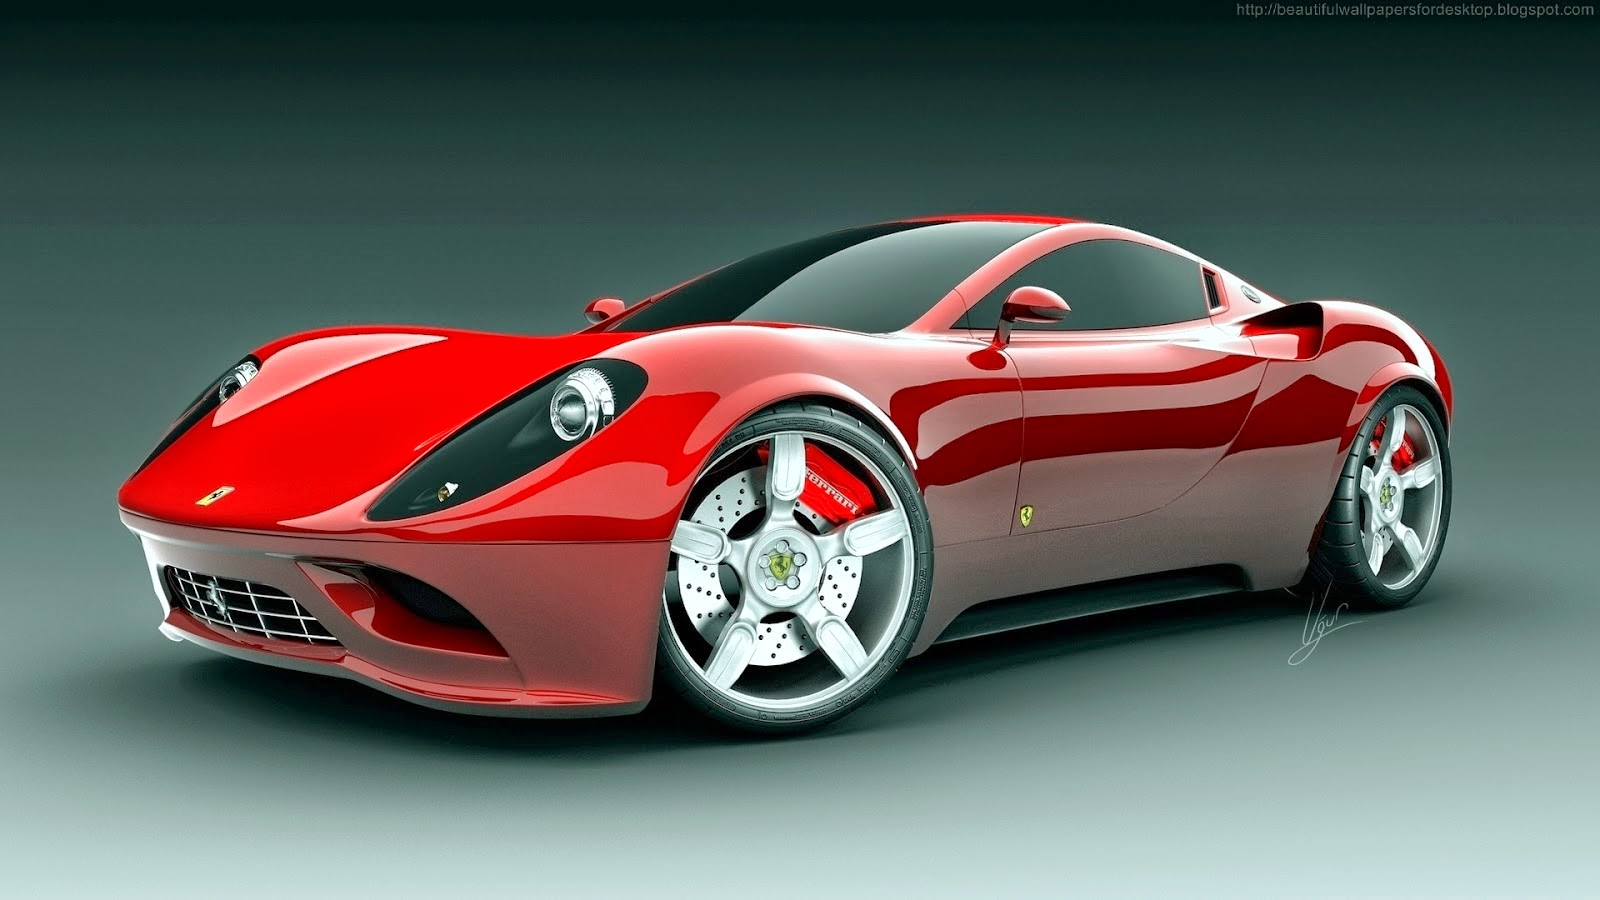 Beautiful Wallpapers Beautiful Red Cars Wallpapers Desktop 1600x900